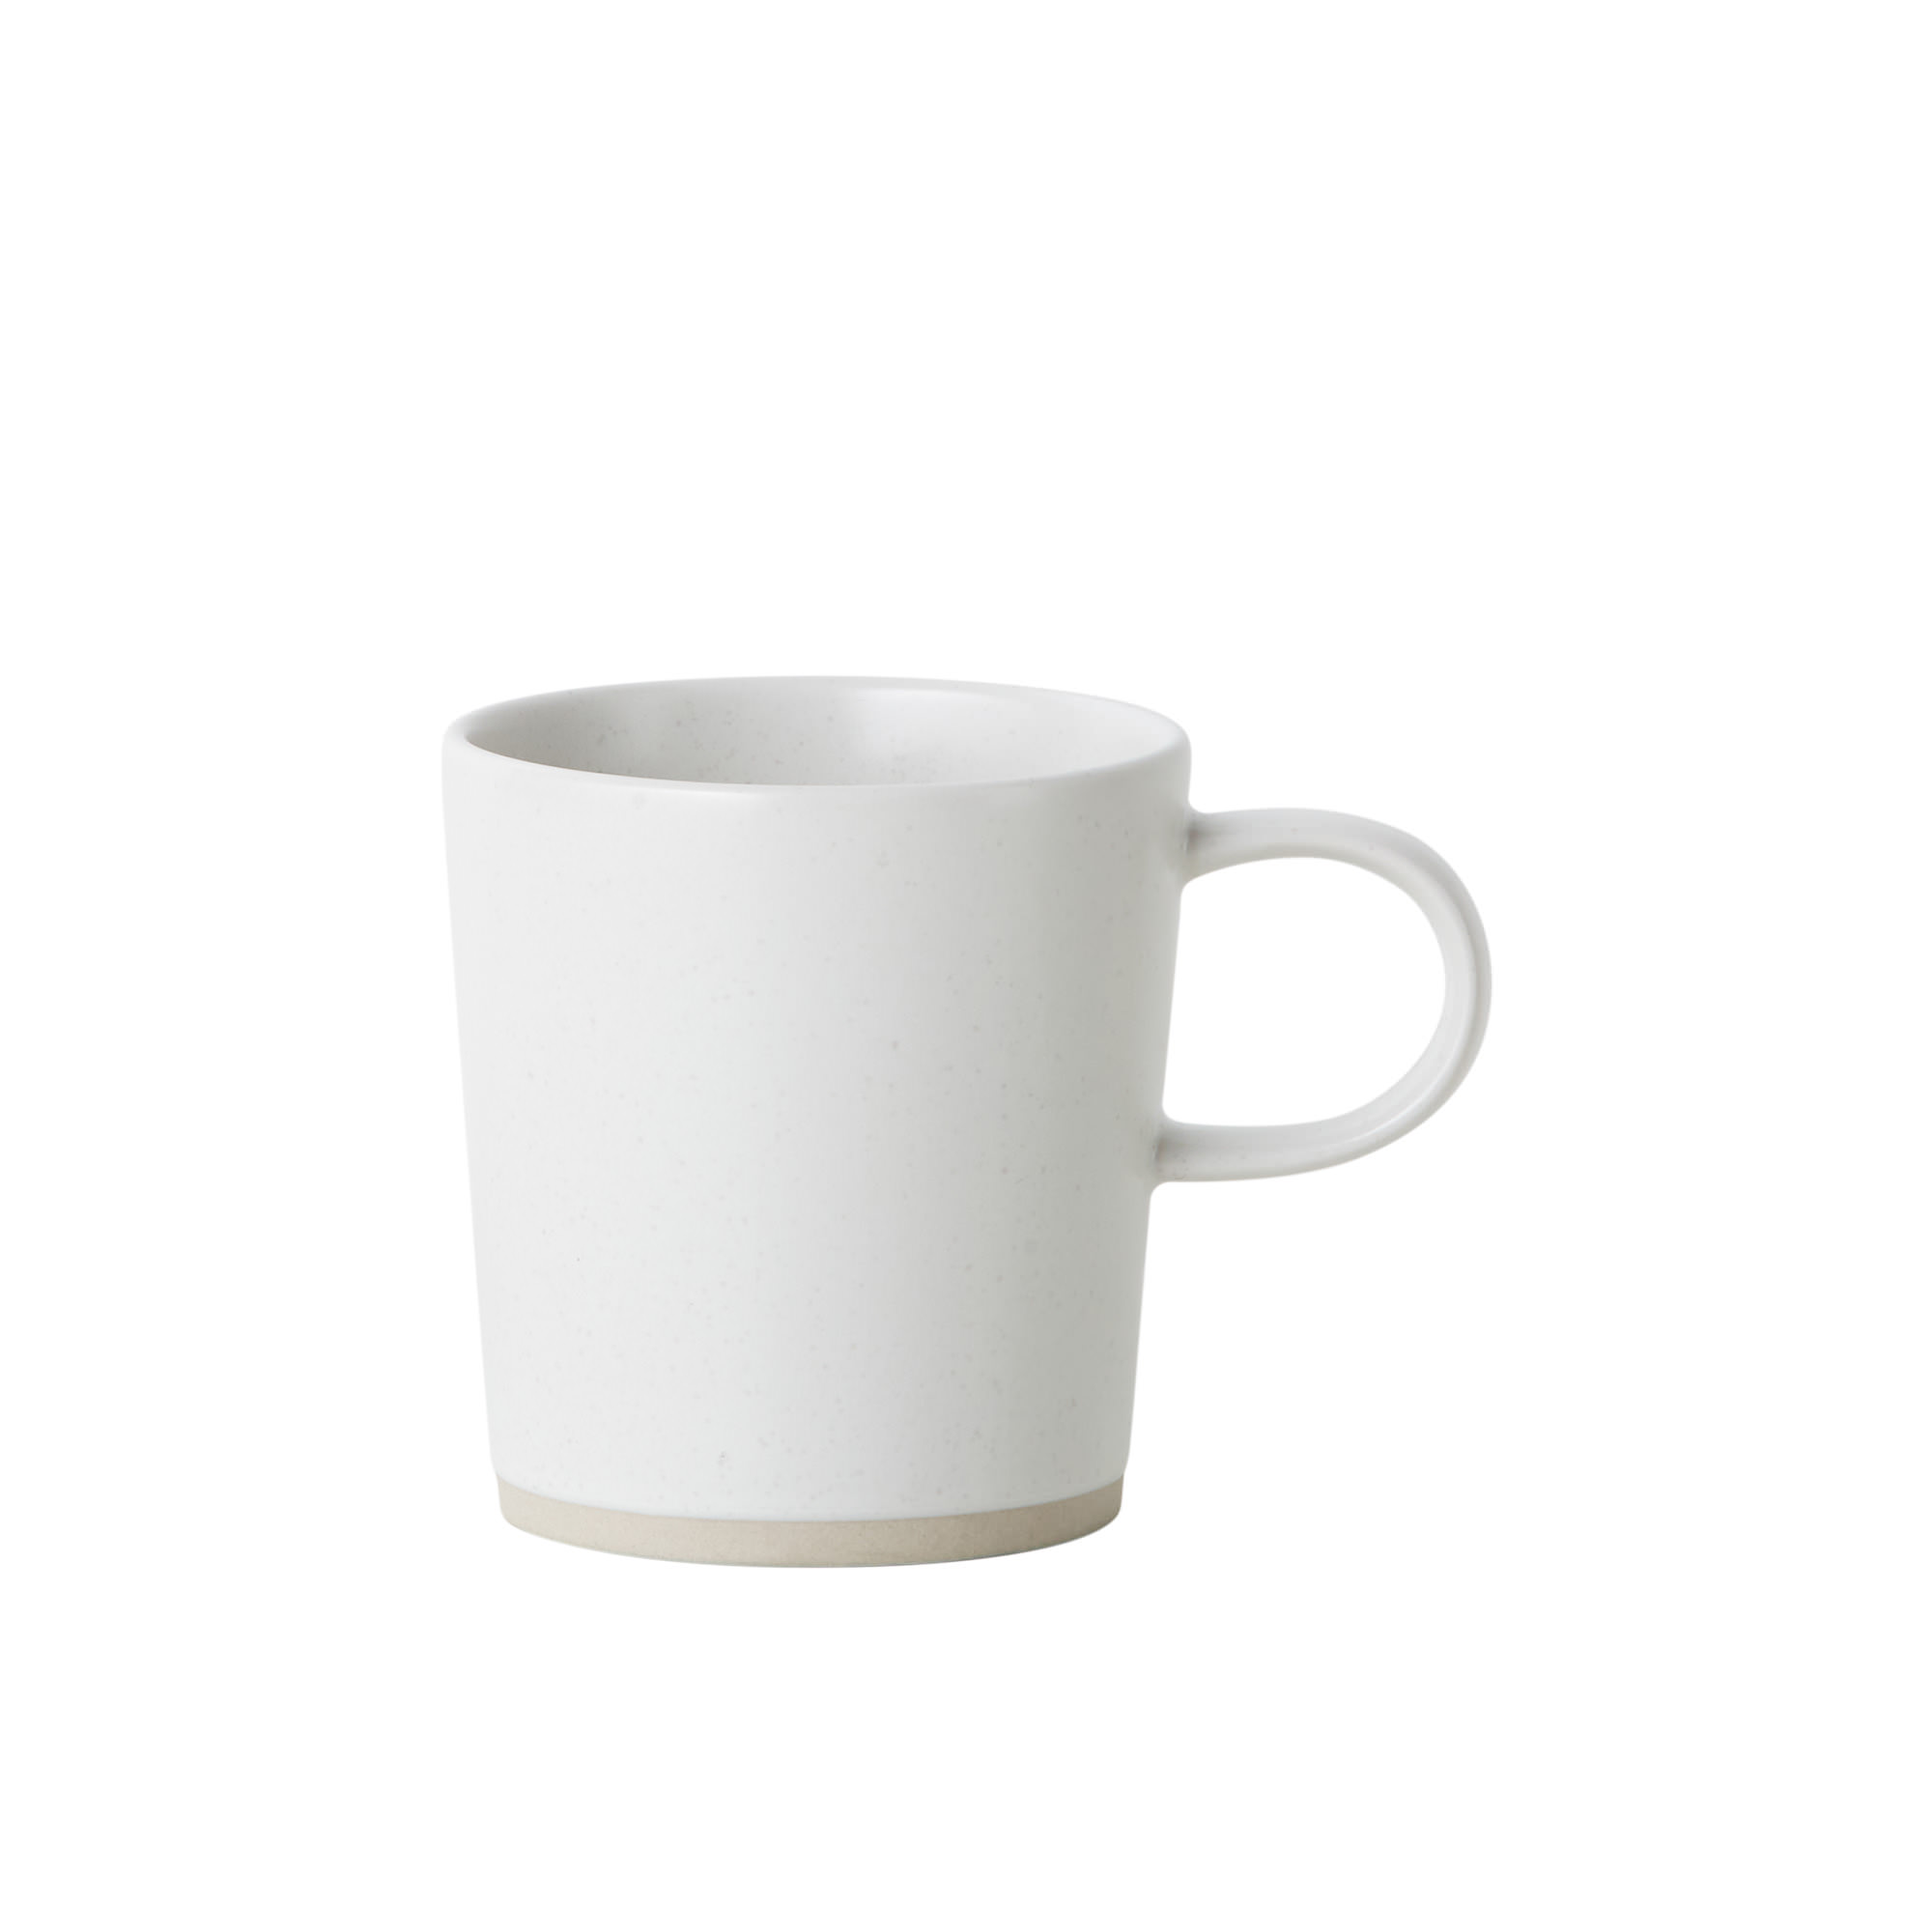 Salisbury & Co Malta Mug 265ml White